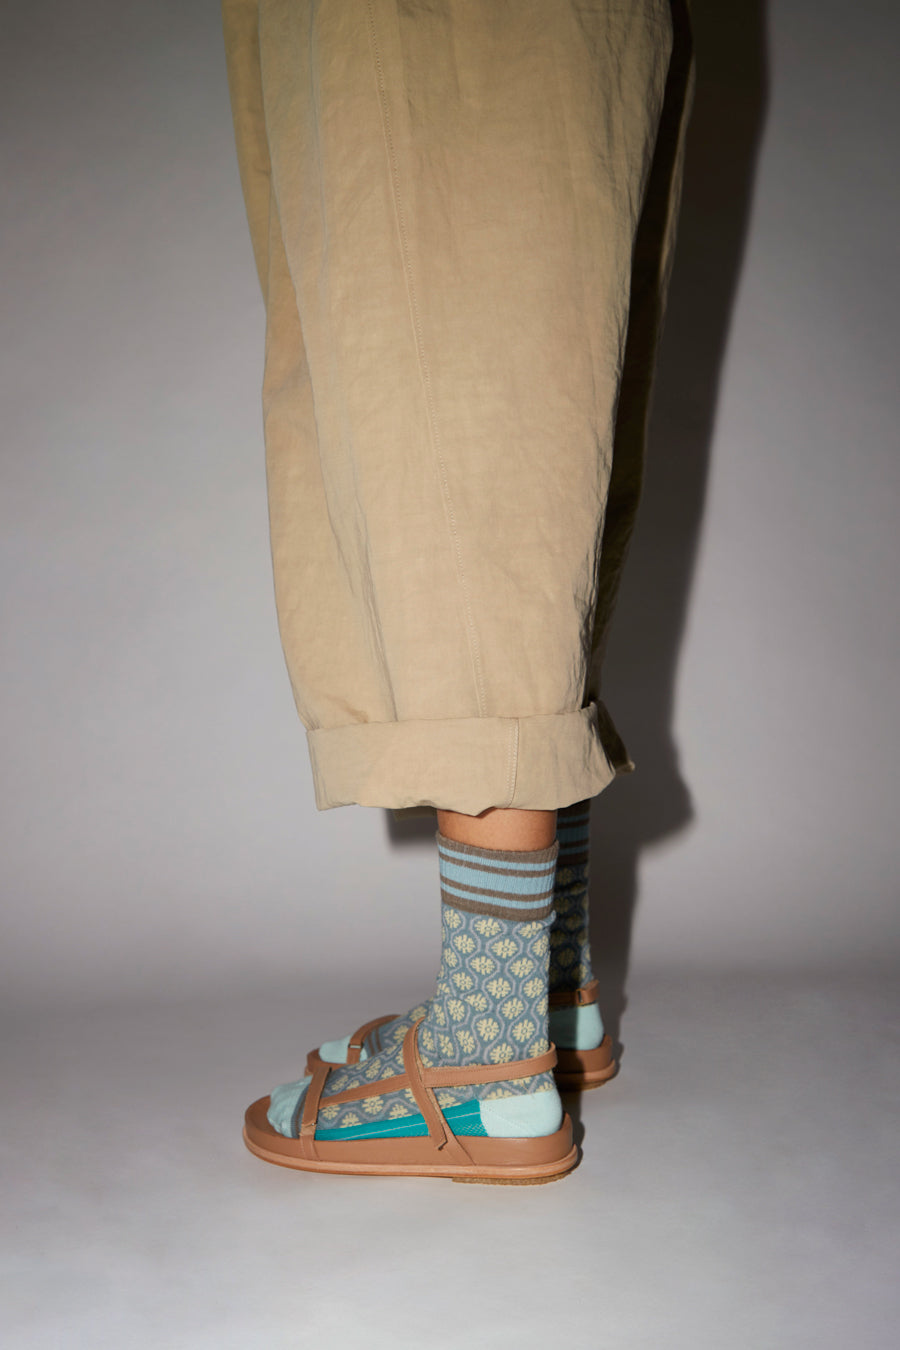 Exquisite J Flower Socks in Grey and Cream